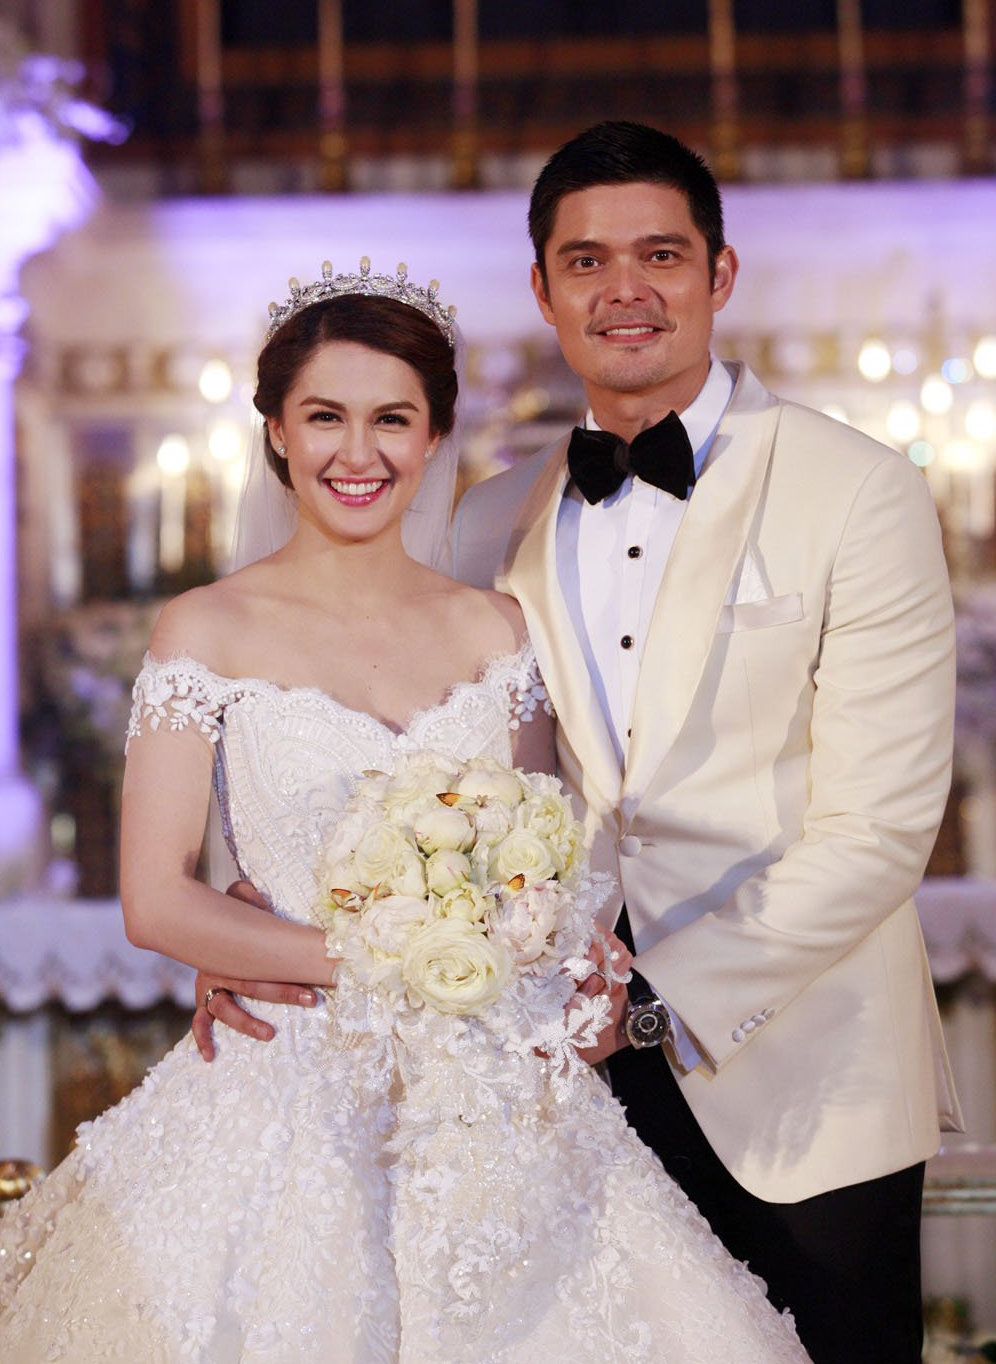 Marian Rivera - my nhan dep nhat Philippines het thoi o tuoi 36? hinh anh 12 nln.png